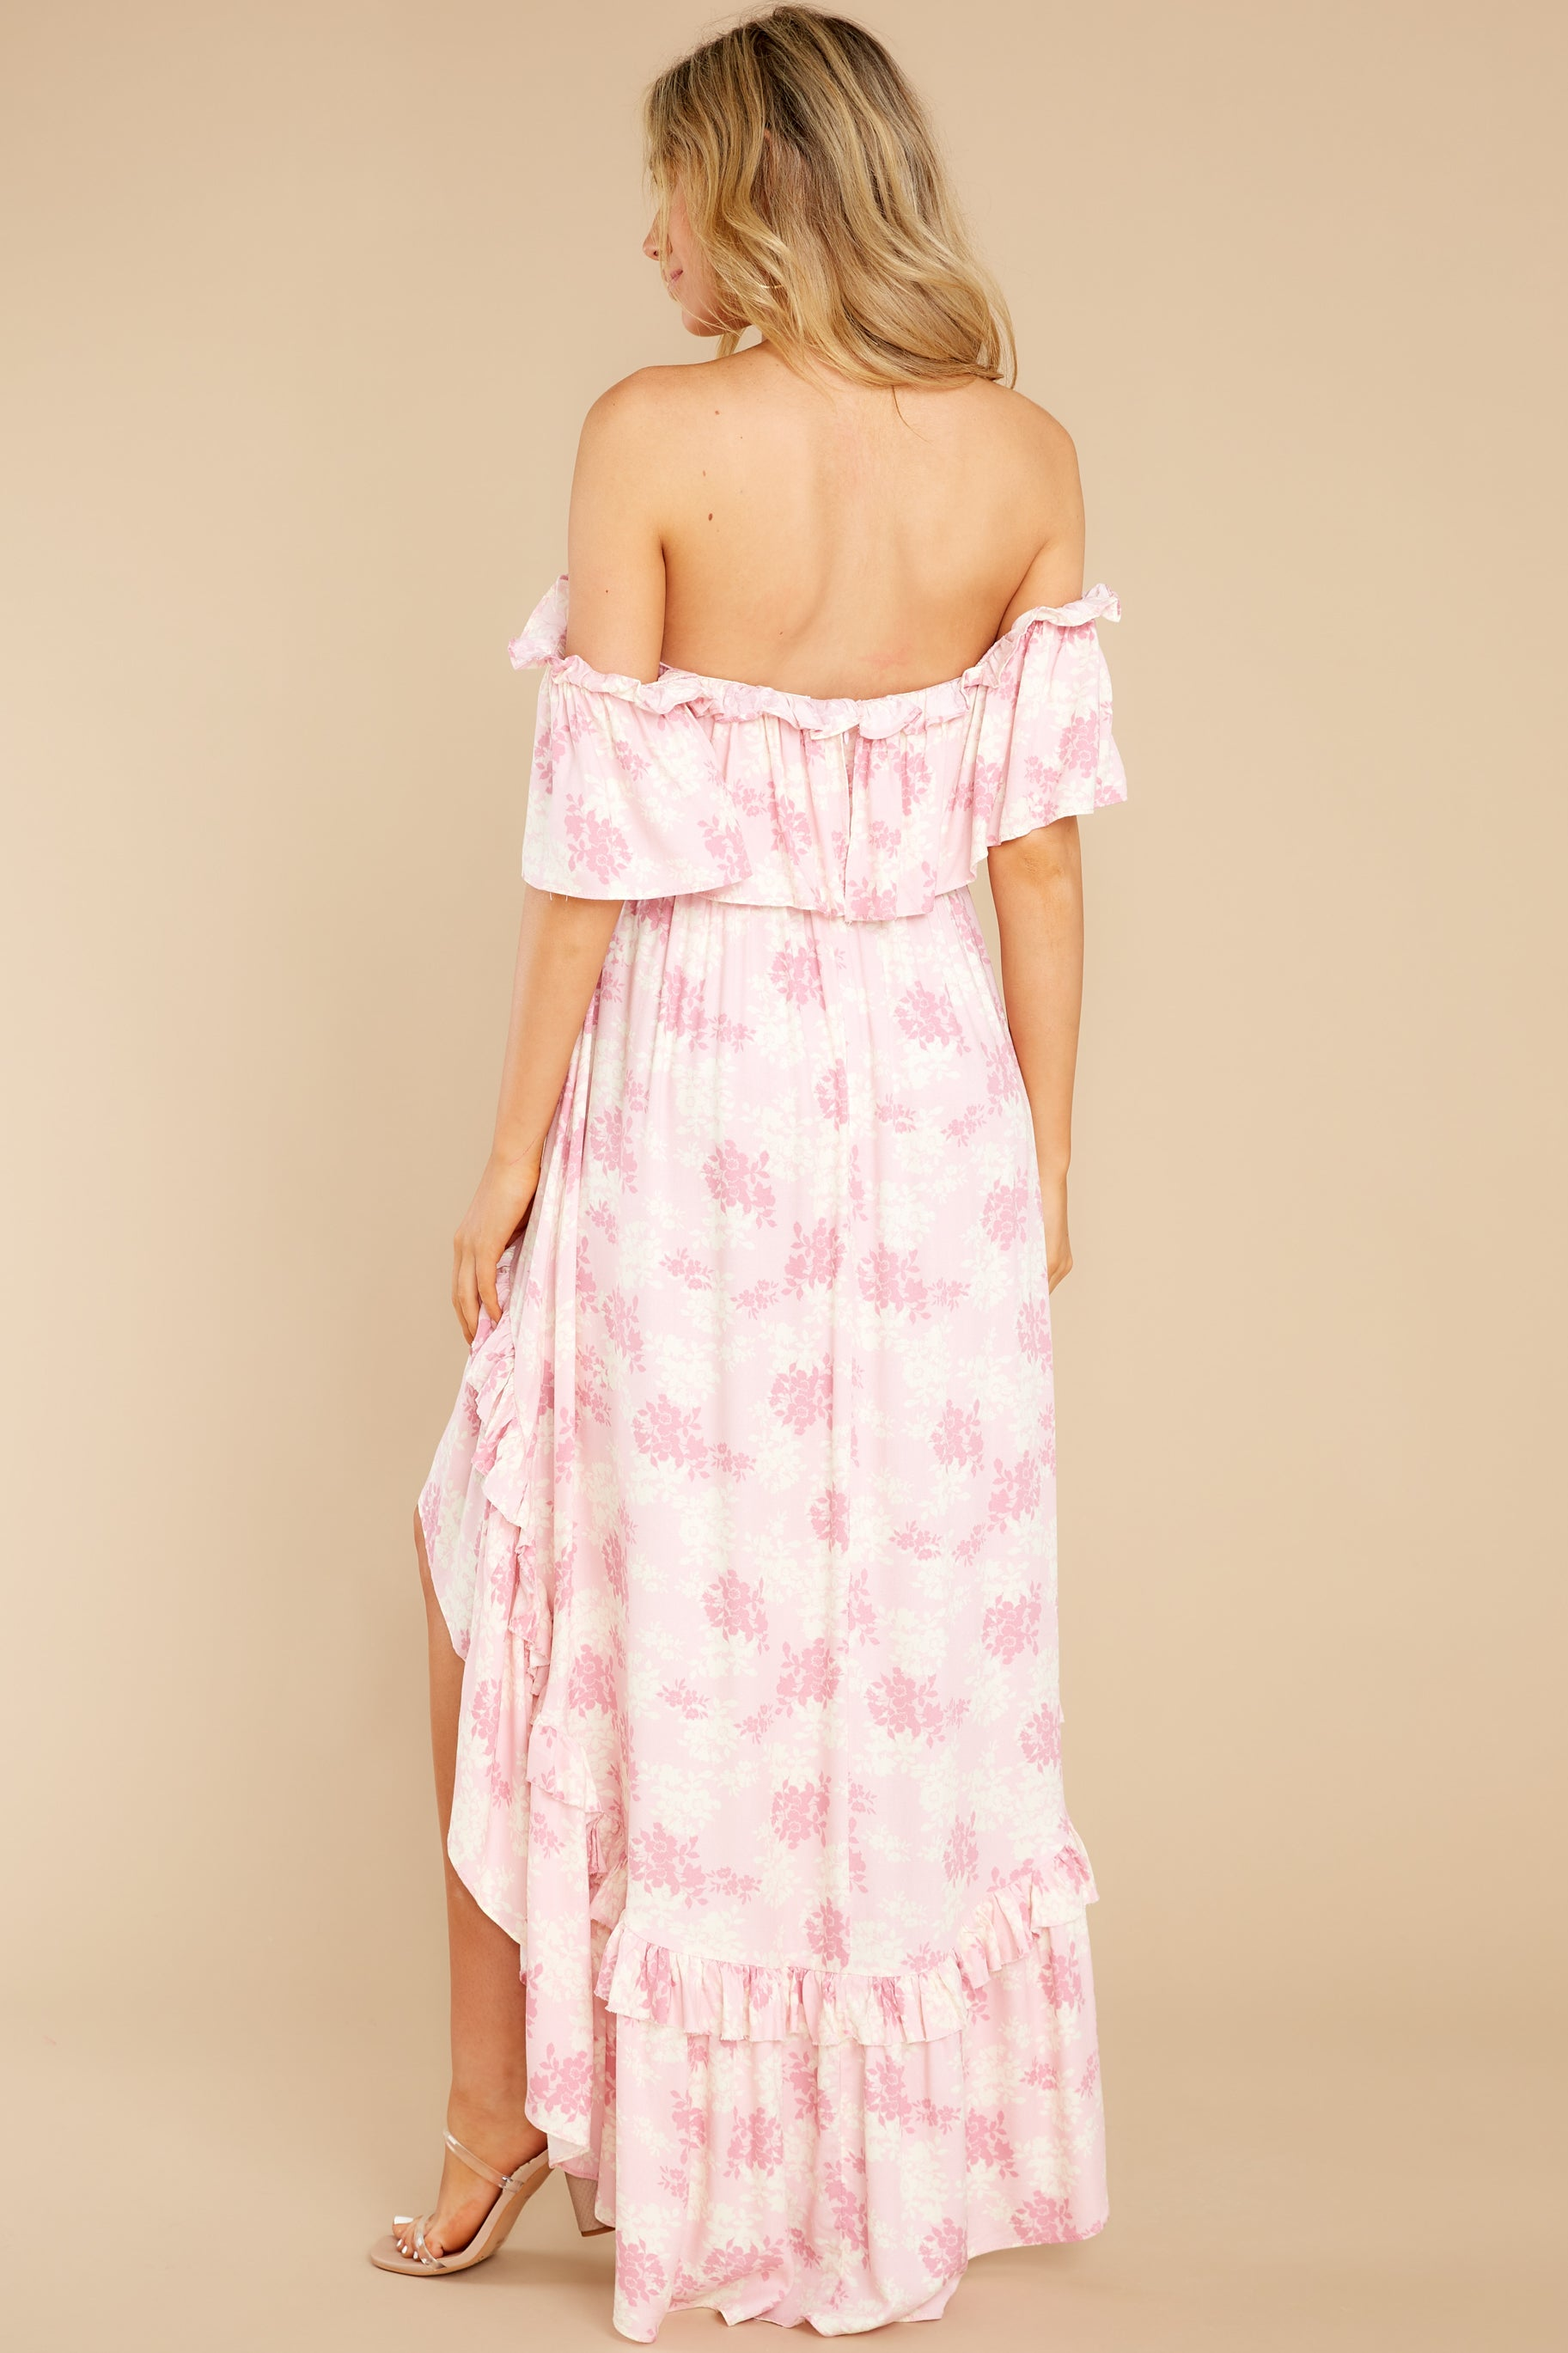 7 Instant Romance Pink Multi Print High-Low Dress at reddress.com